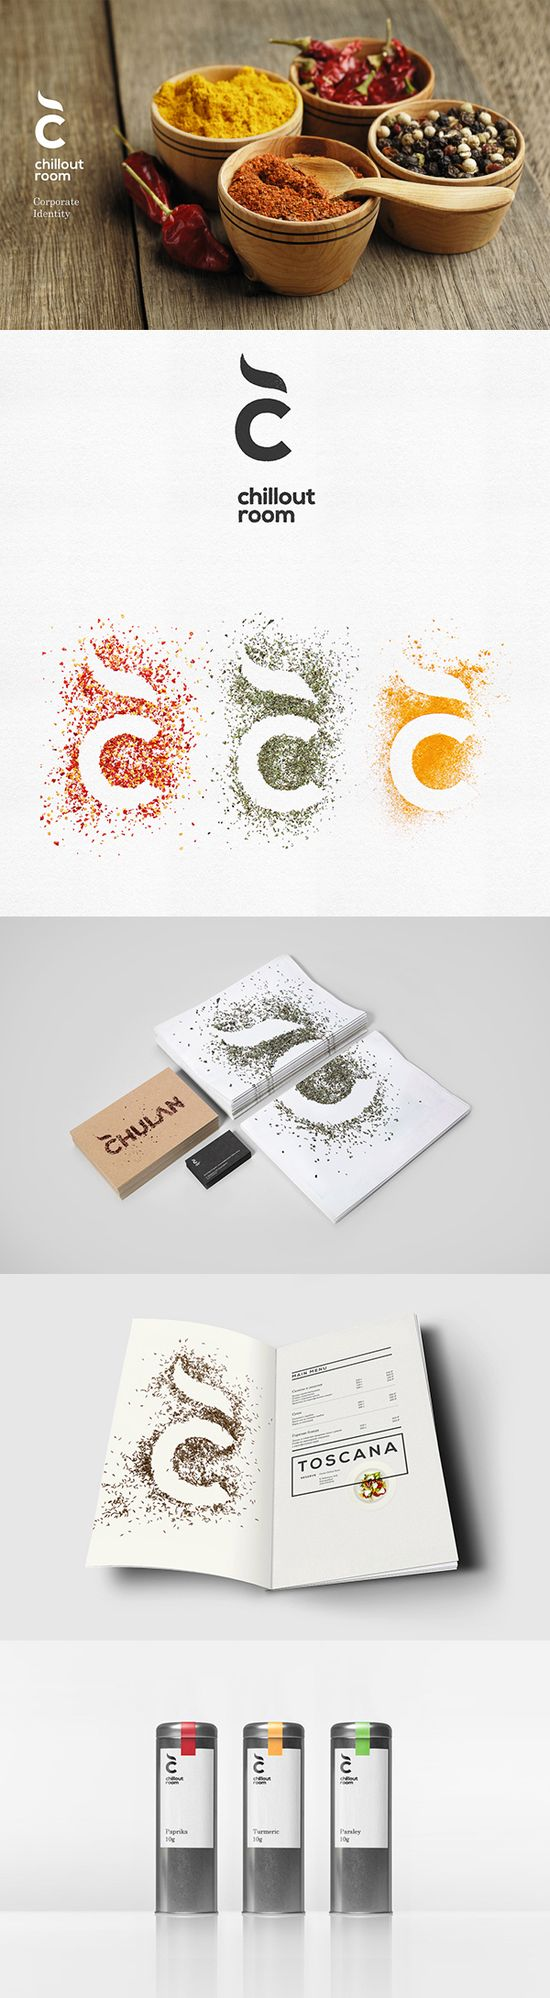 Chillout room spices #identity #packaging